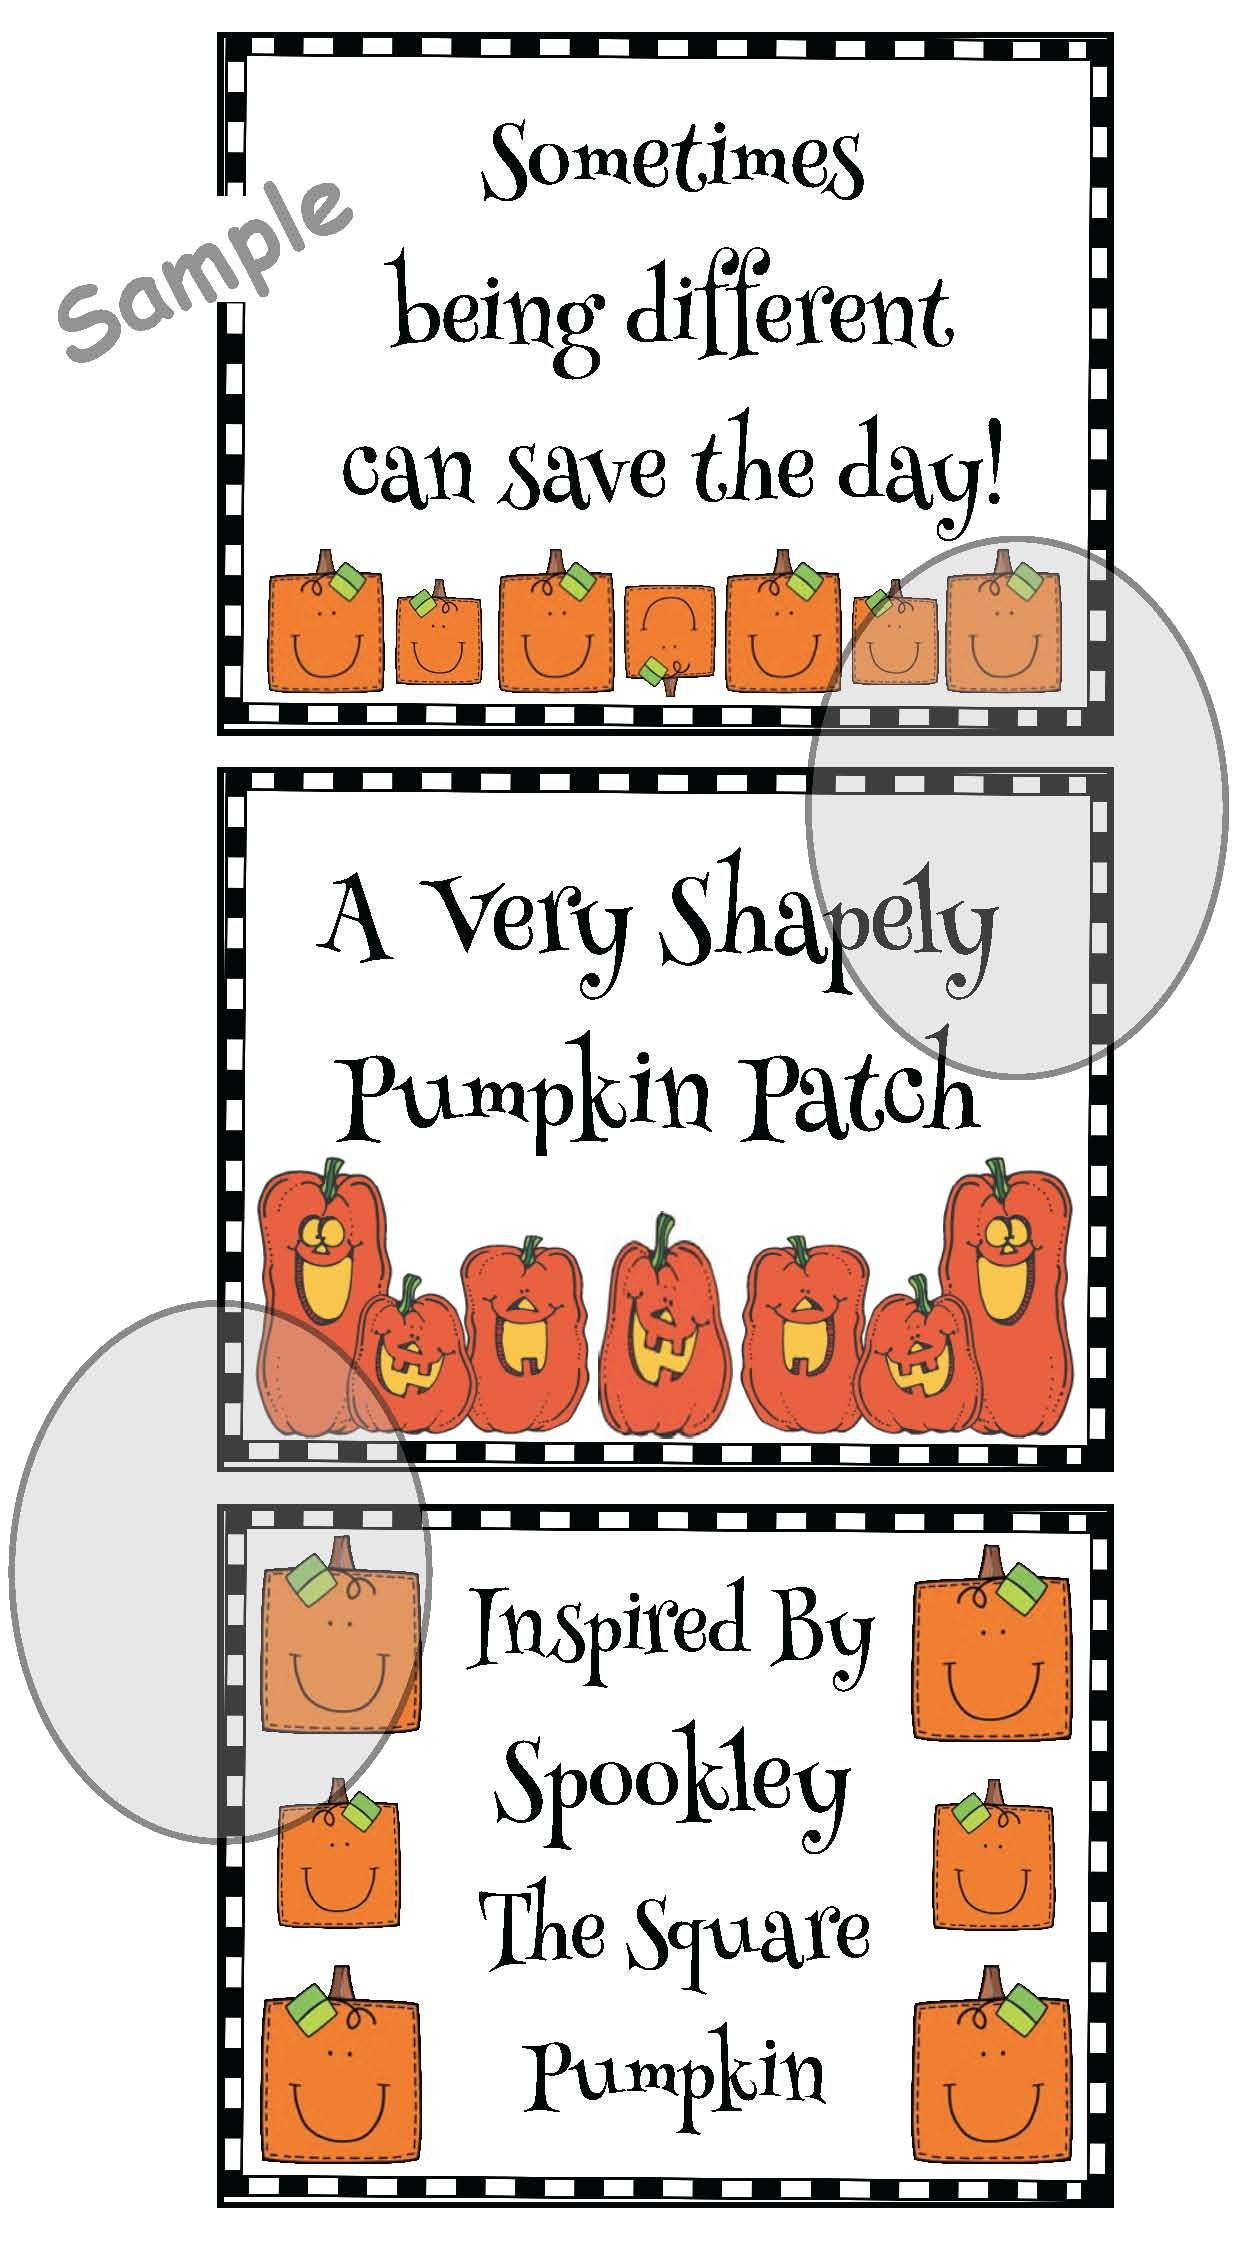 2d Shapes With Spookley The Square Pumpkin With Images